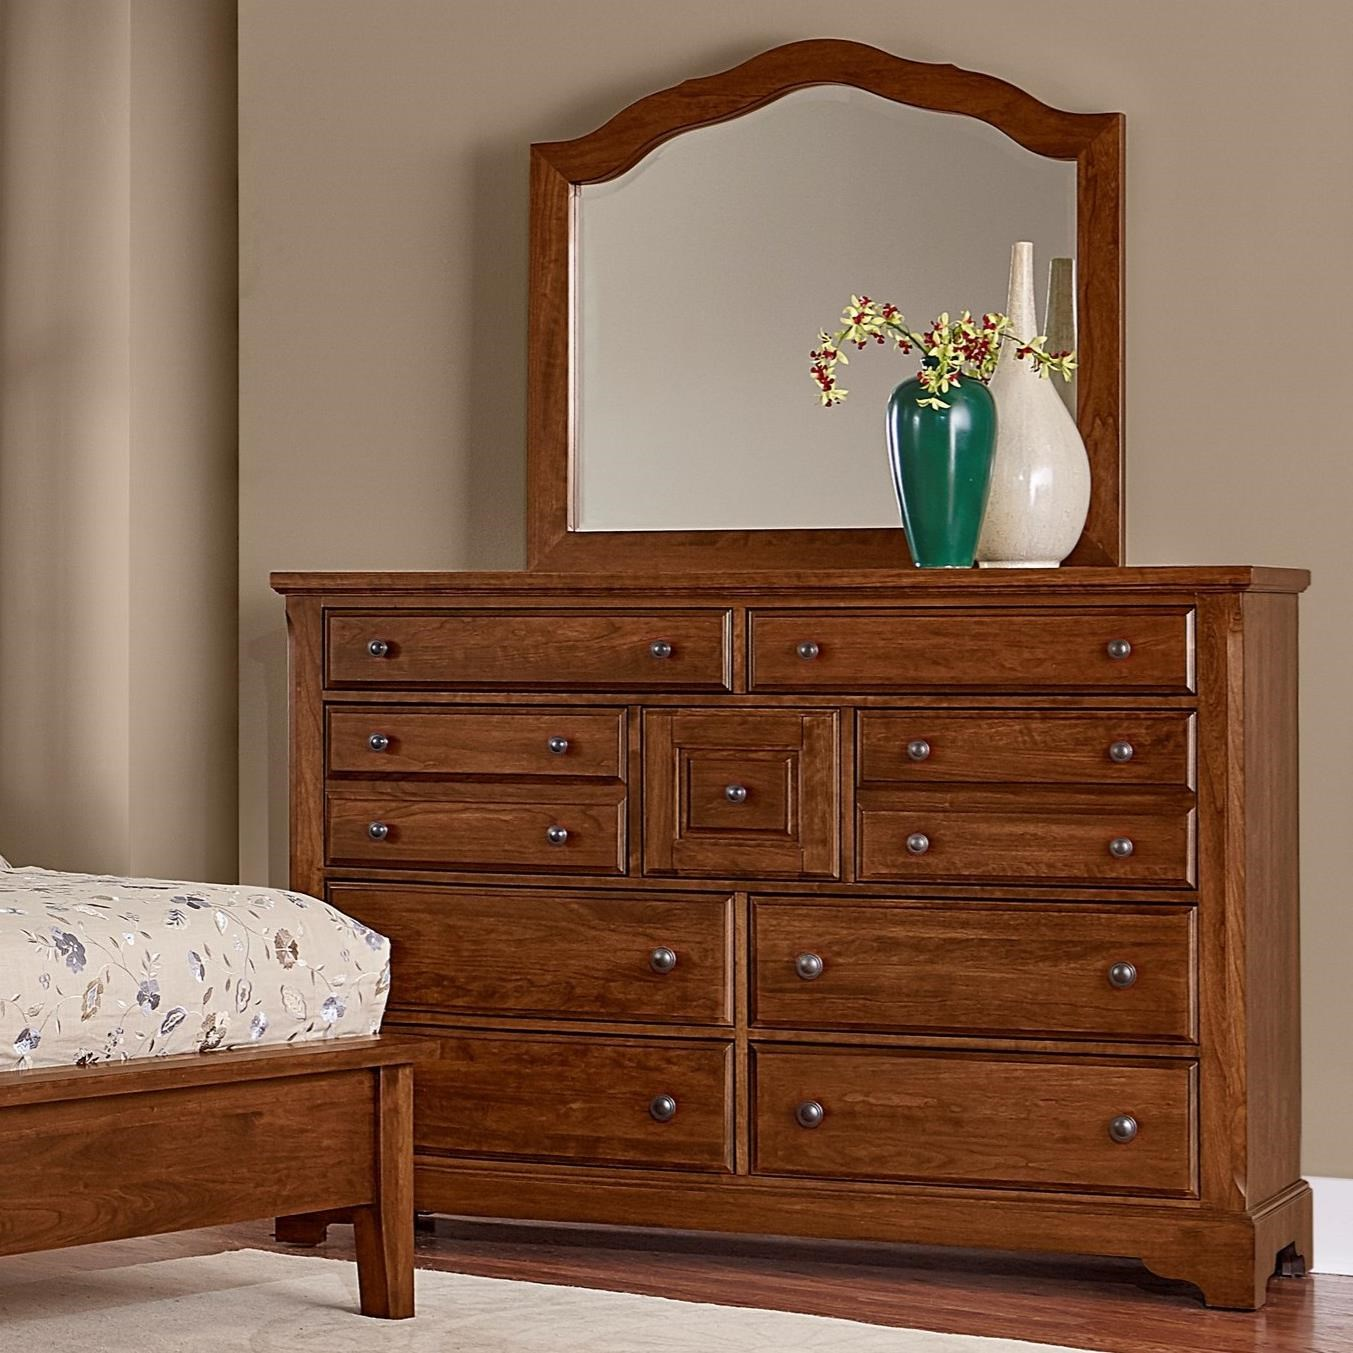 Villa Triple Dresser & Arched Mirror